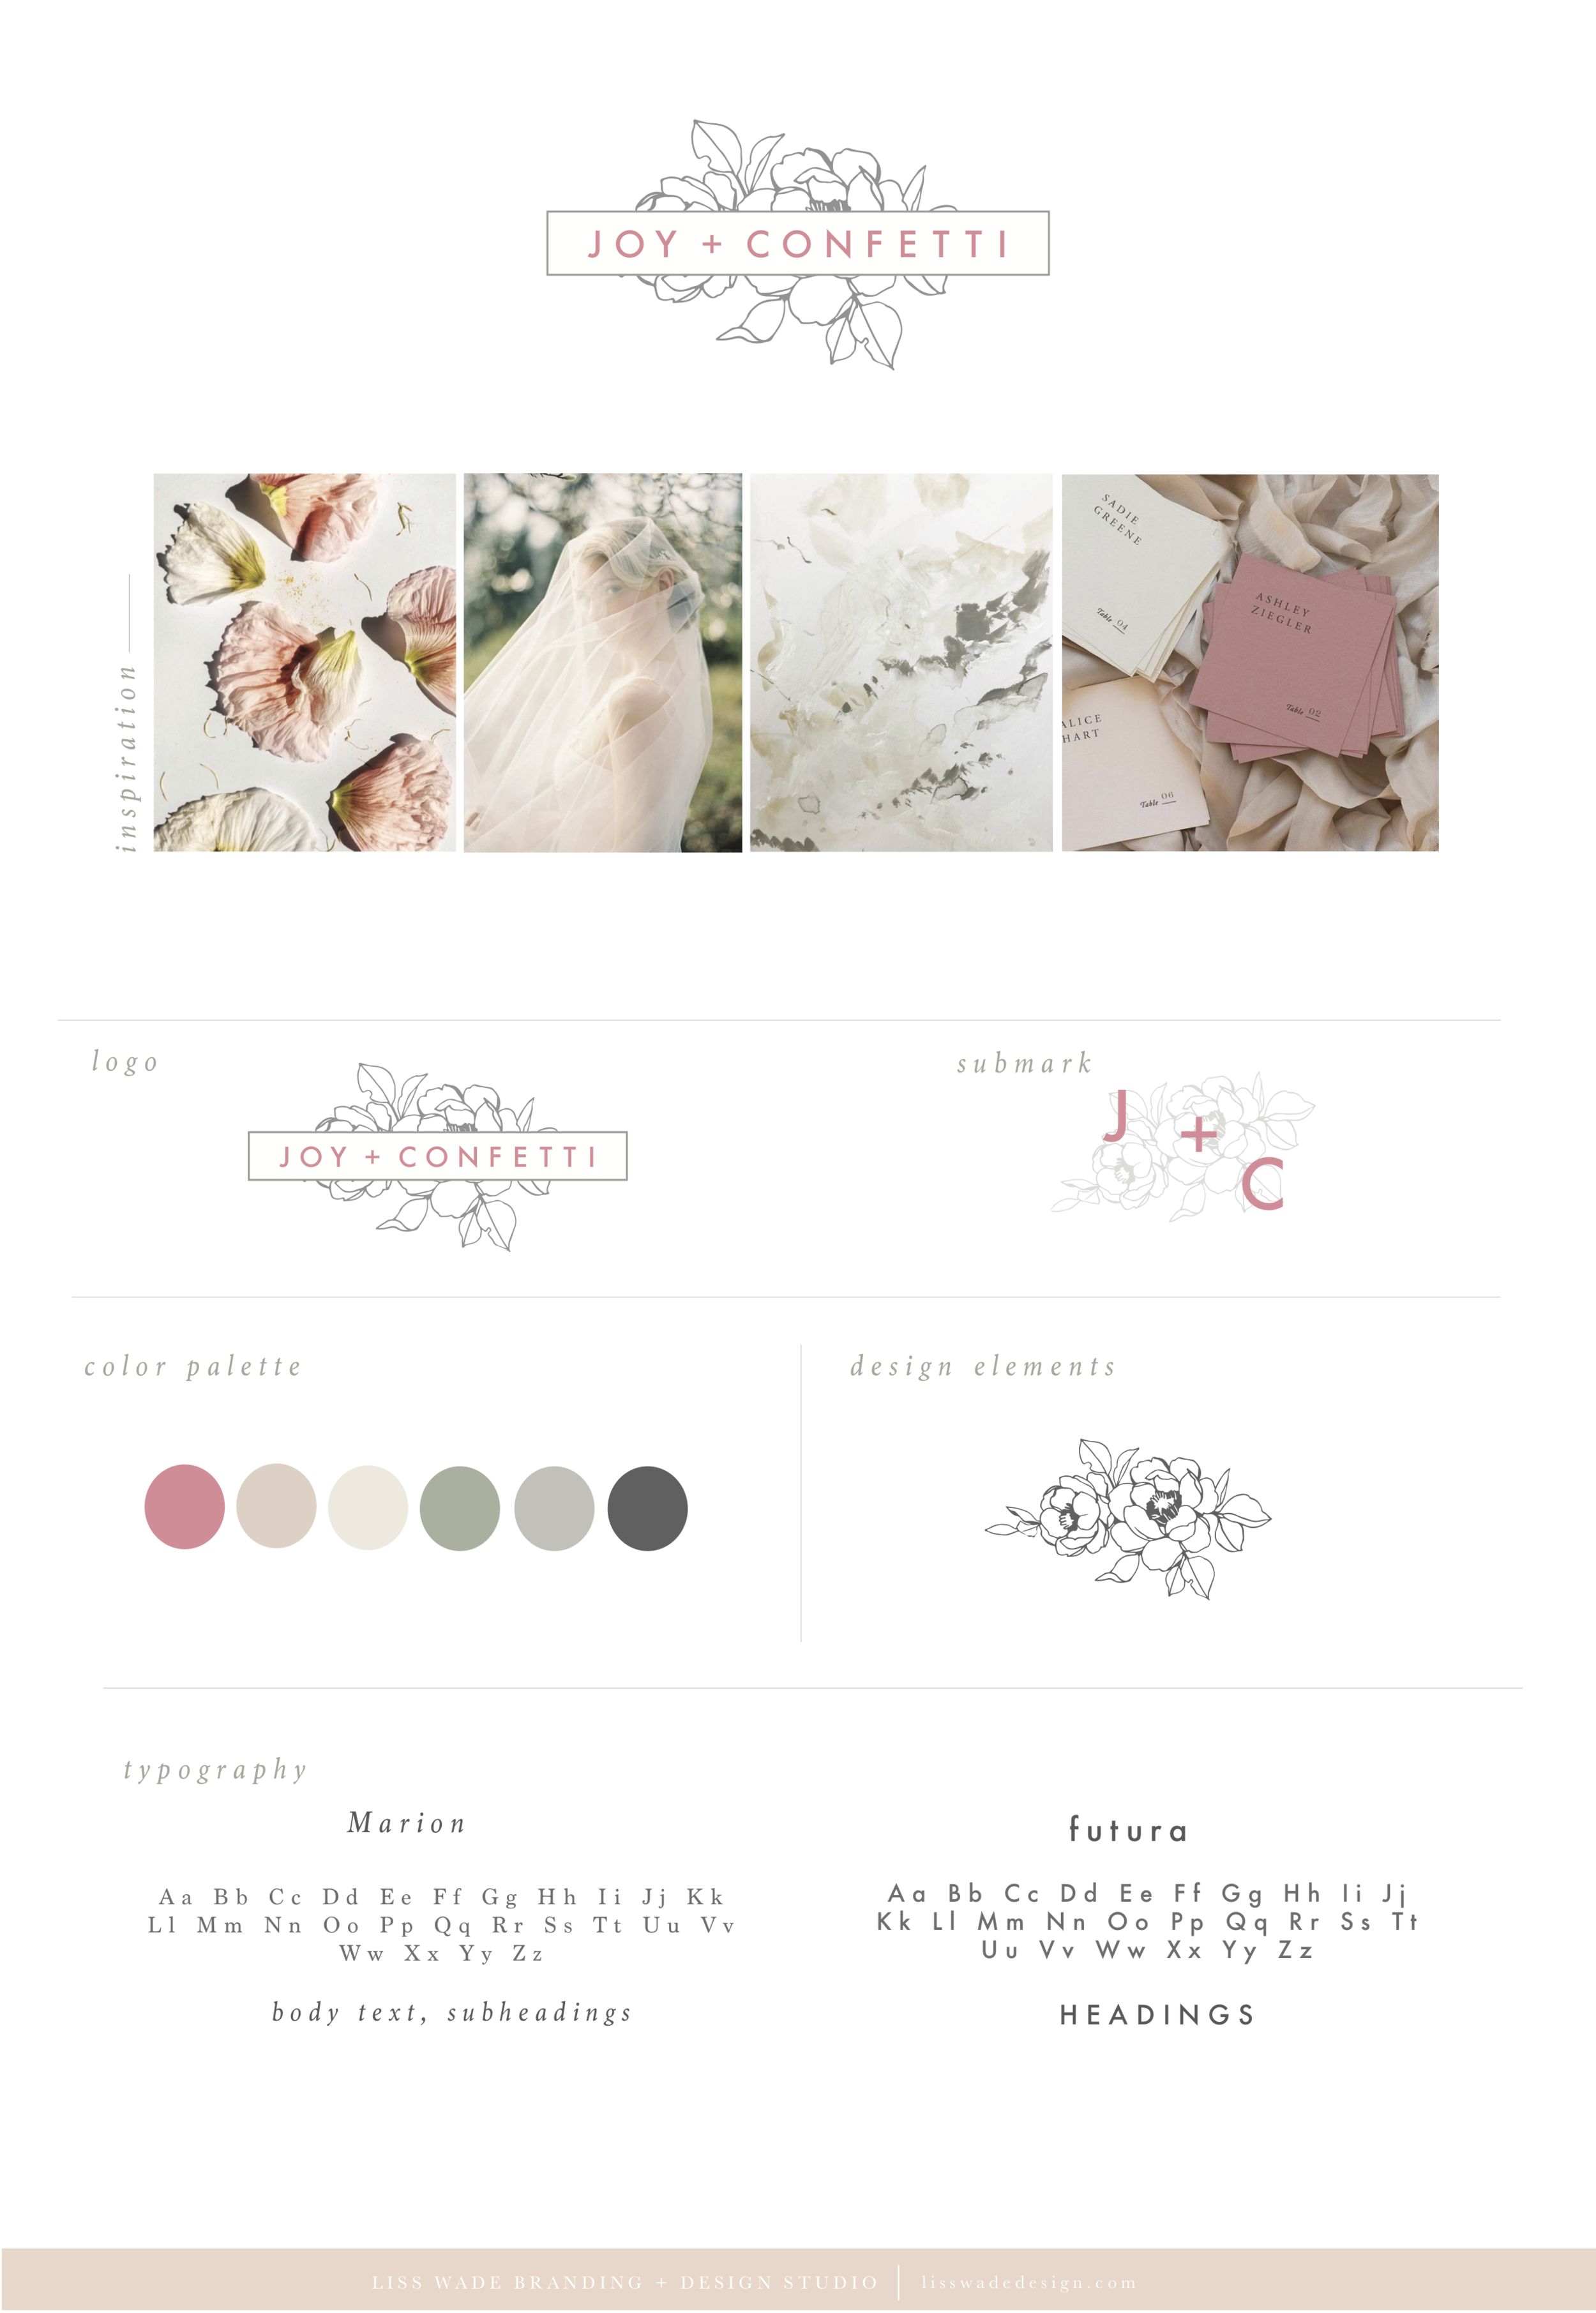 joy+confetti | Brand Style Guide.png